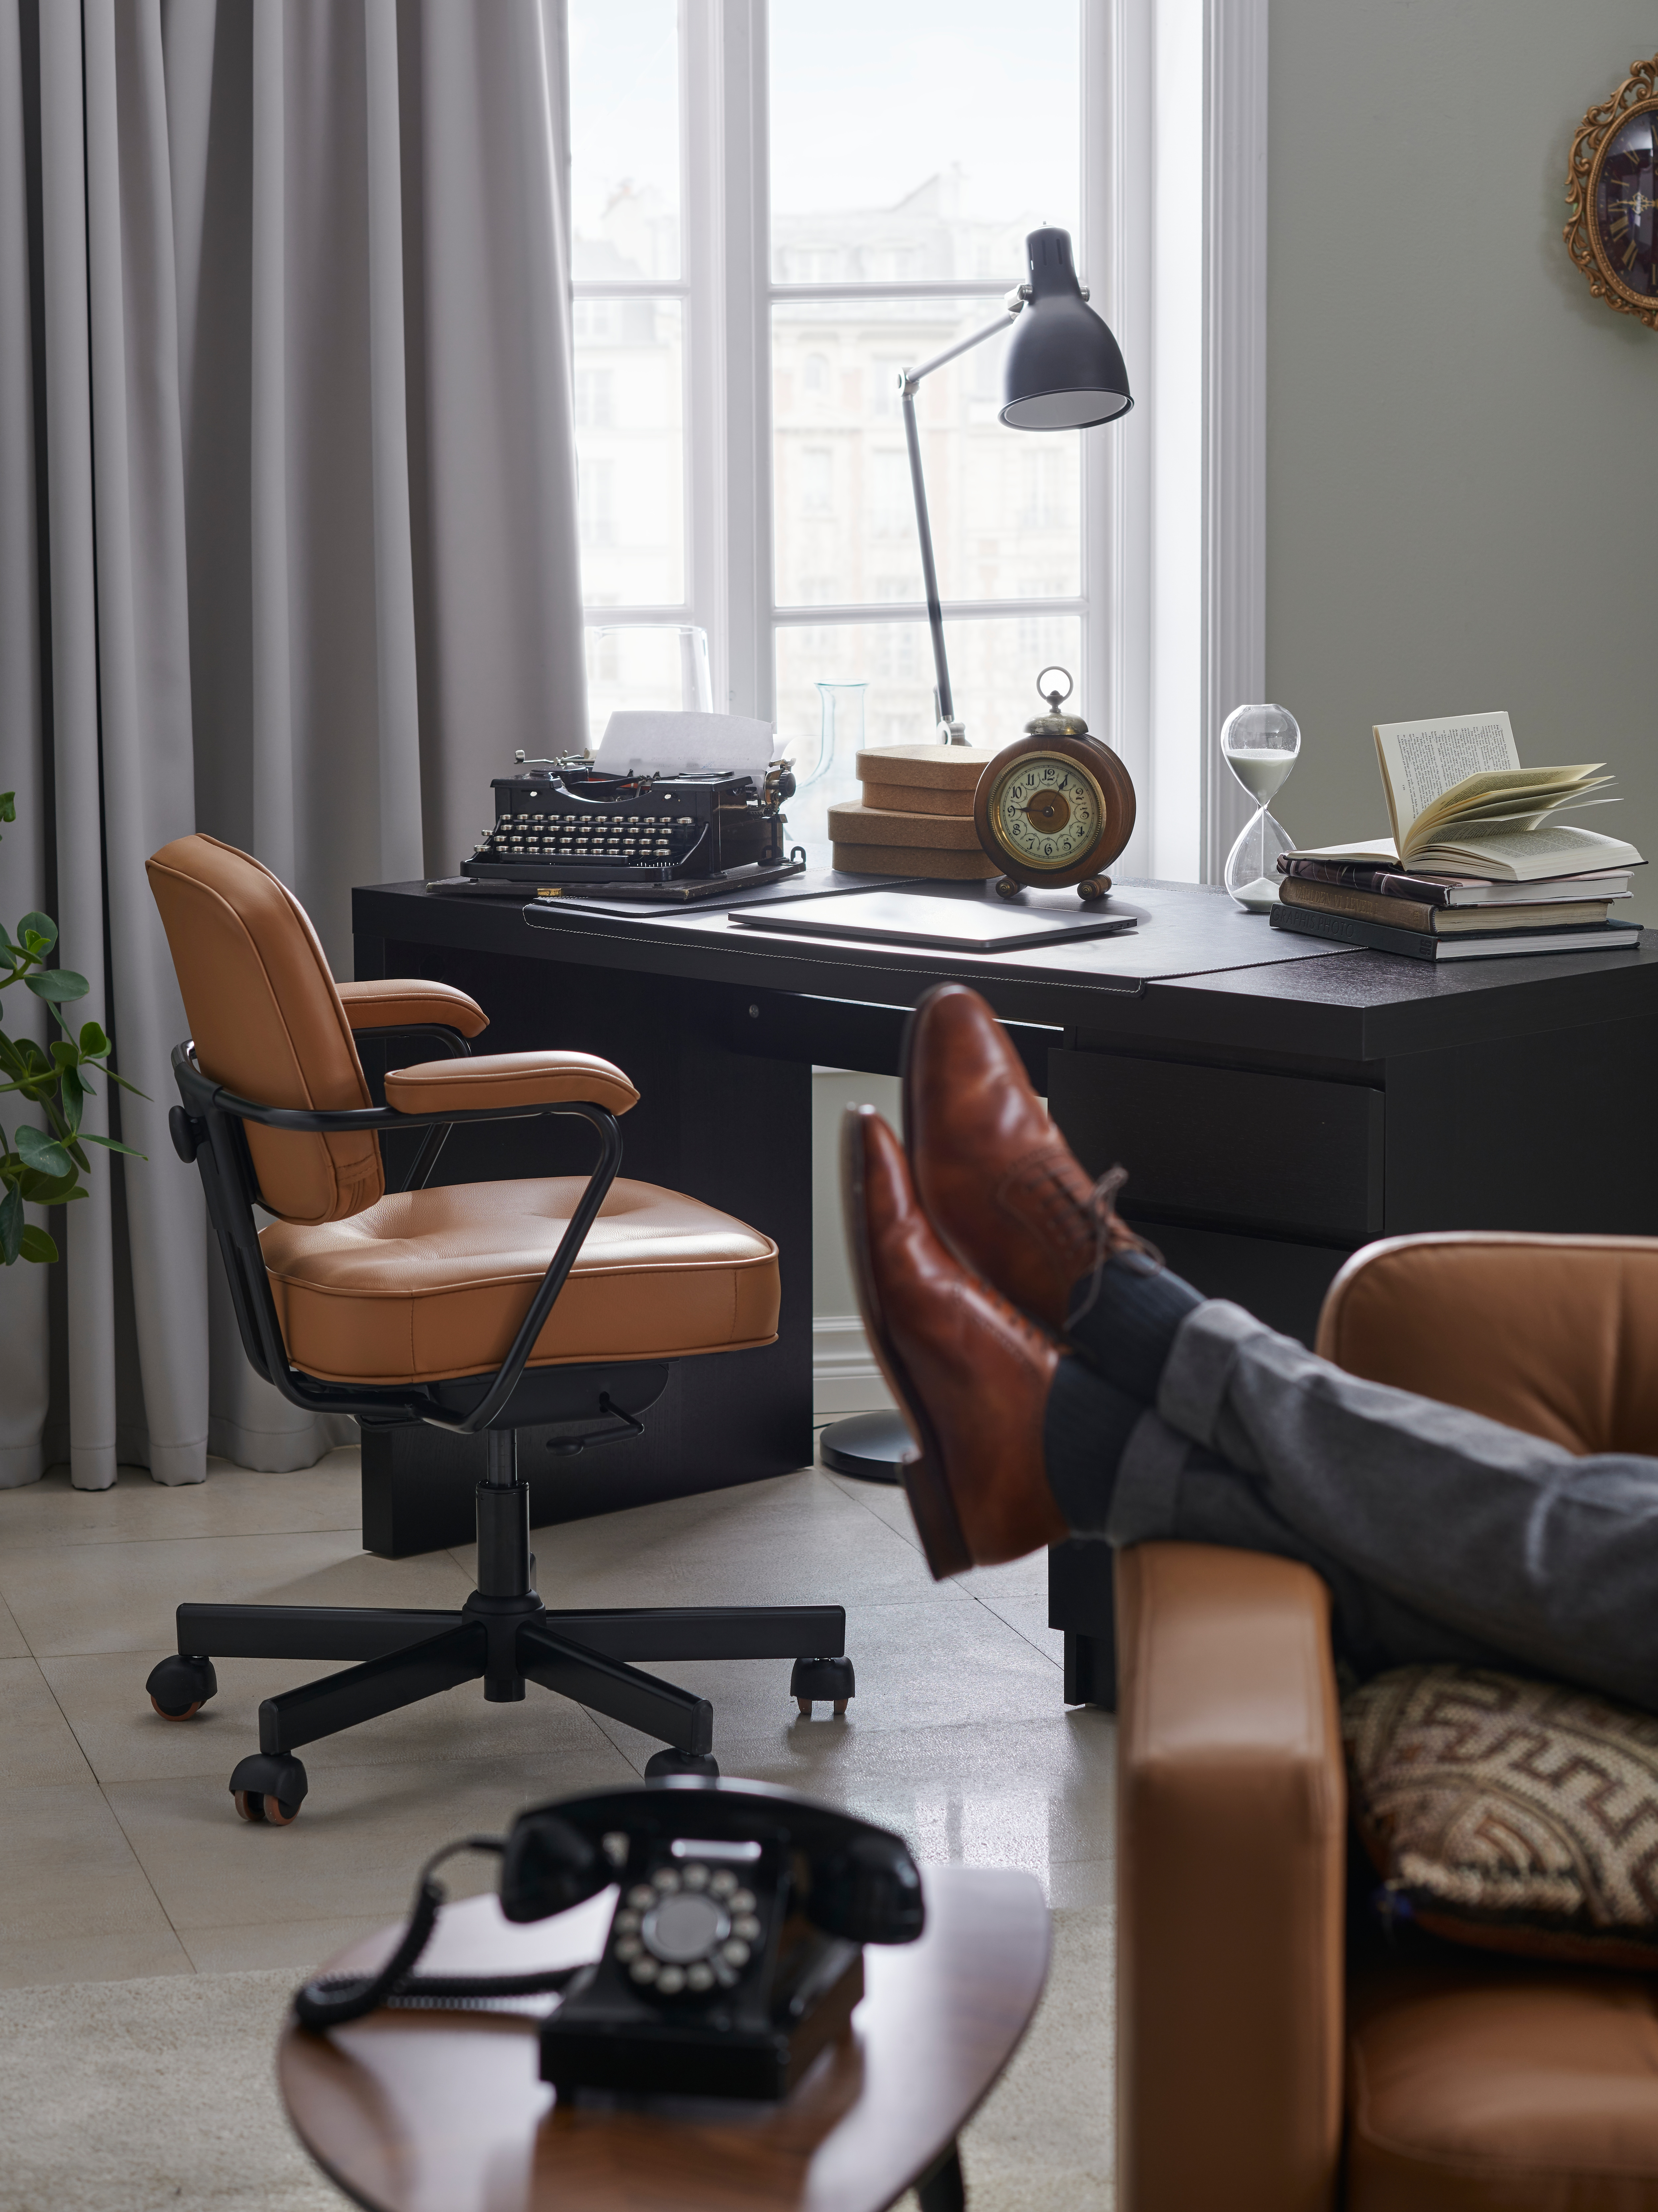 A pair of legs are partially visible on a sofa in the foreground by a leather office chair and black-brown MALM desk.